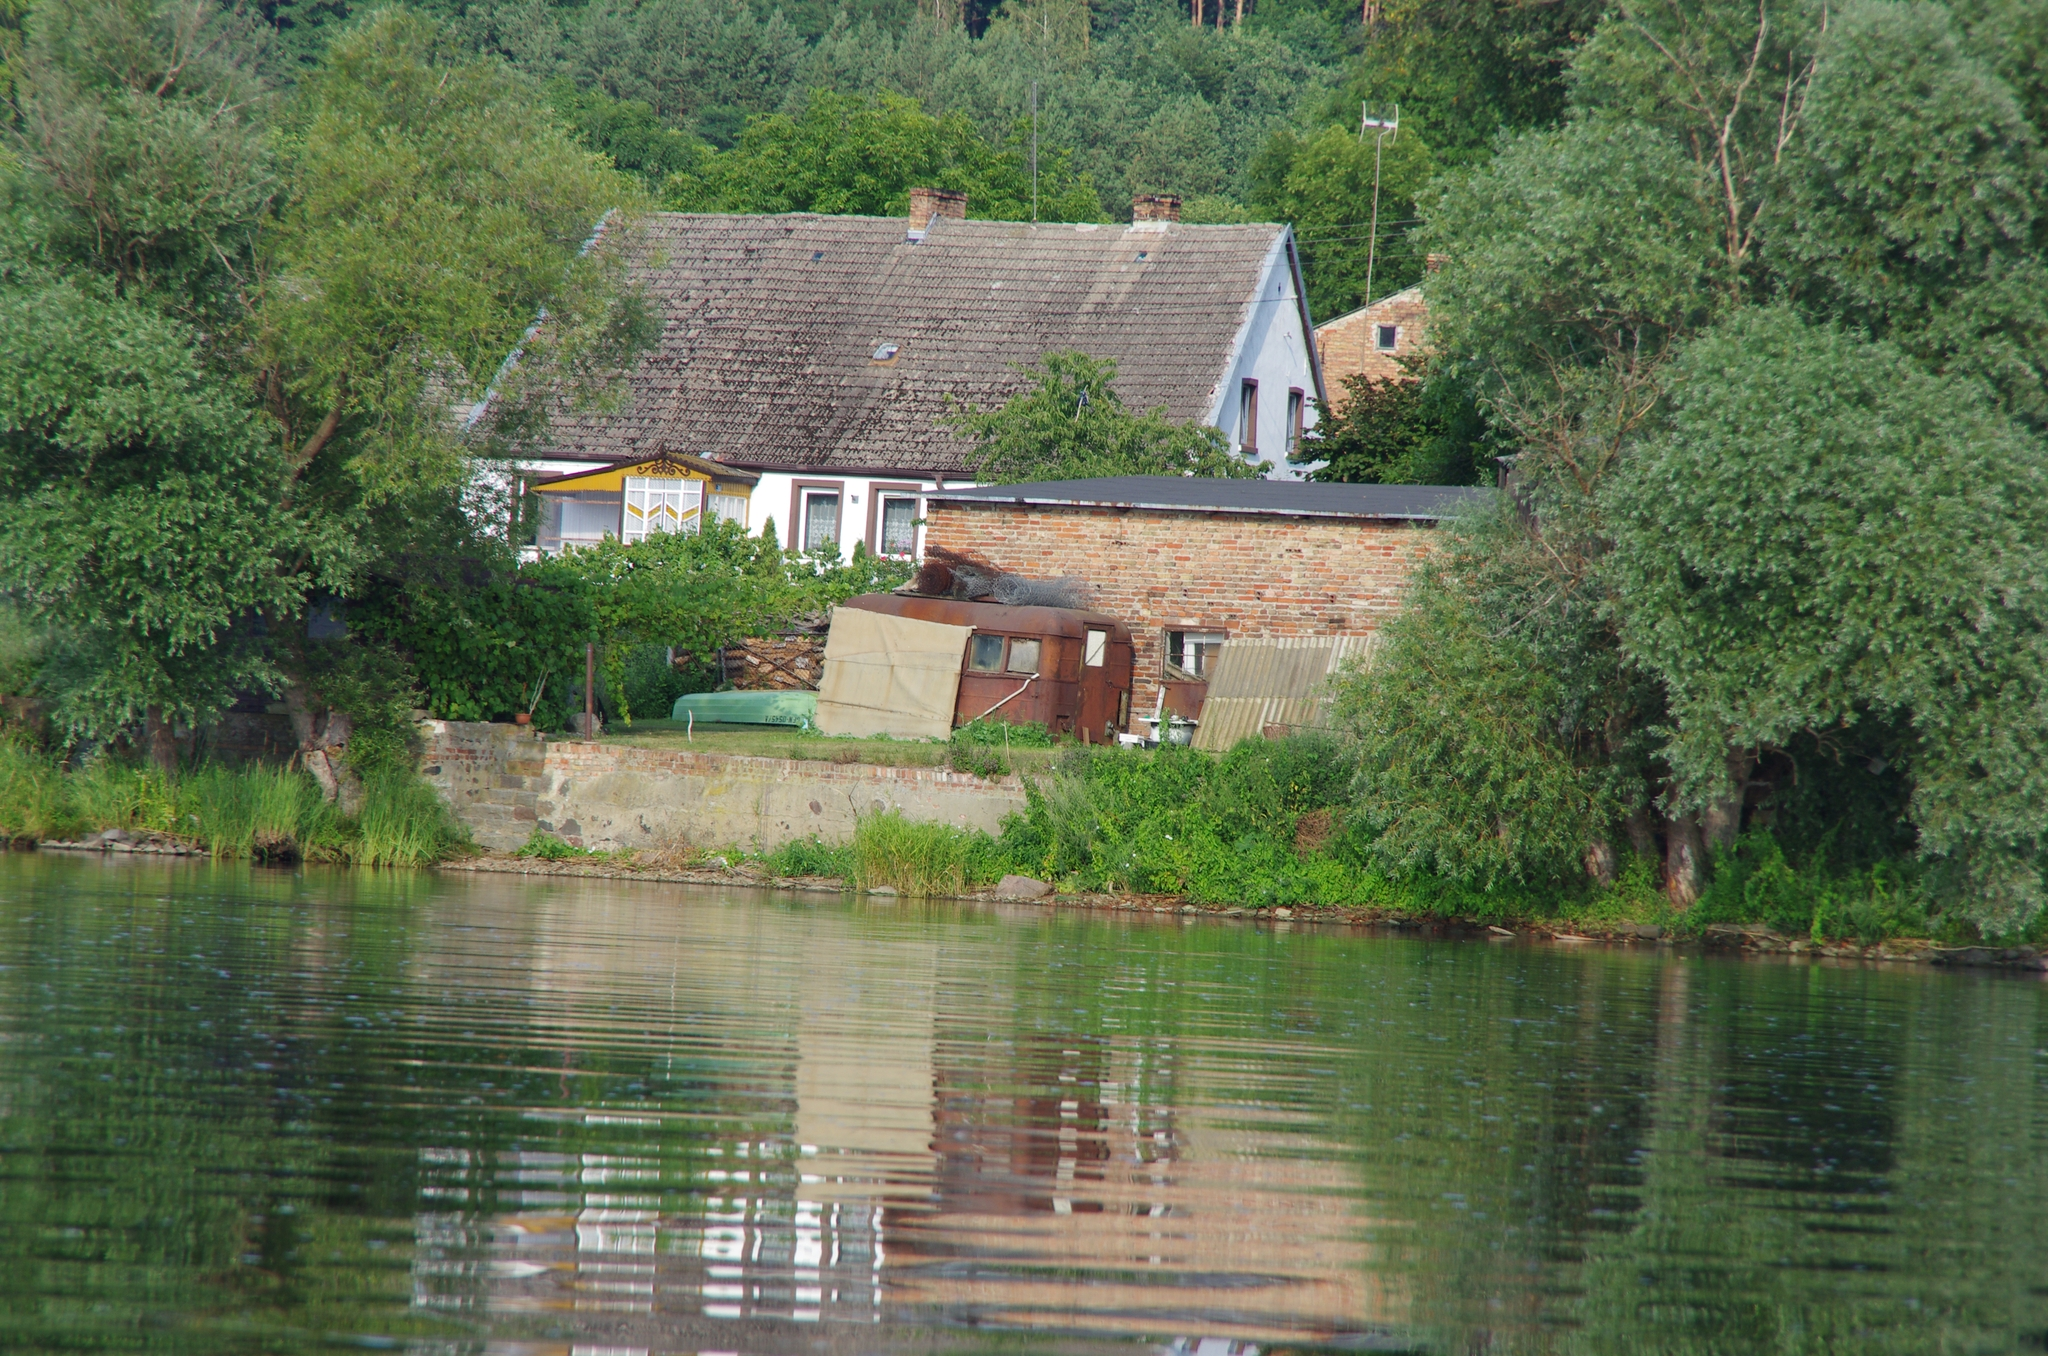 kayaking-odra-east-and-west_17-09-21_25-07-2016